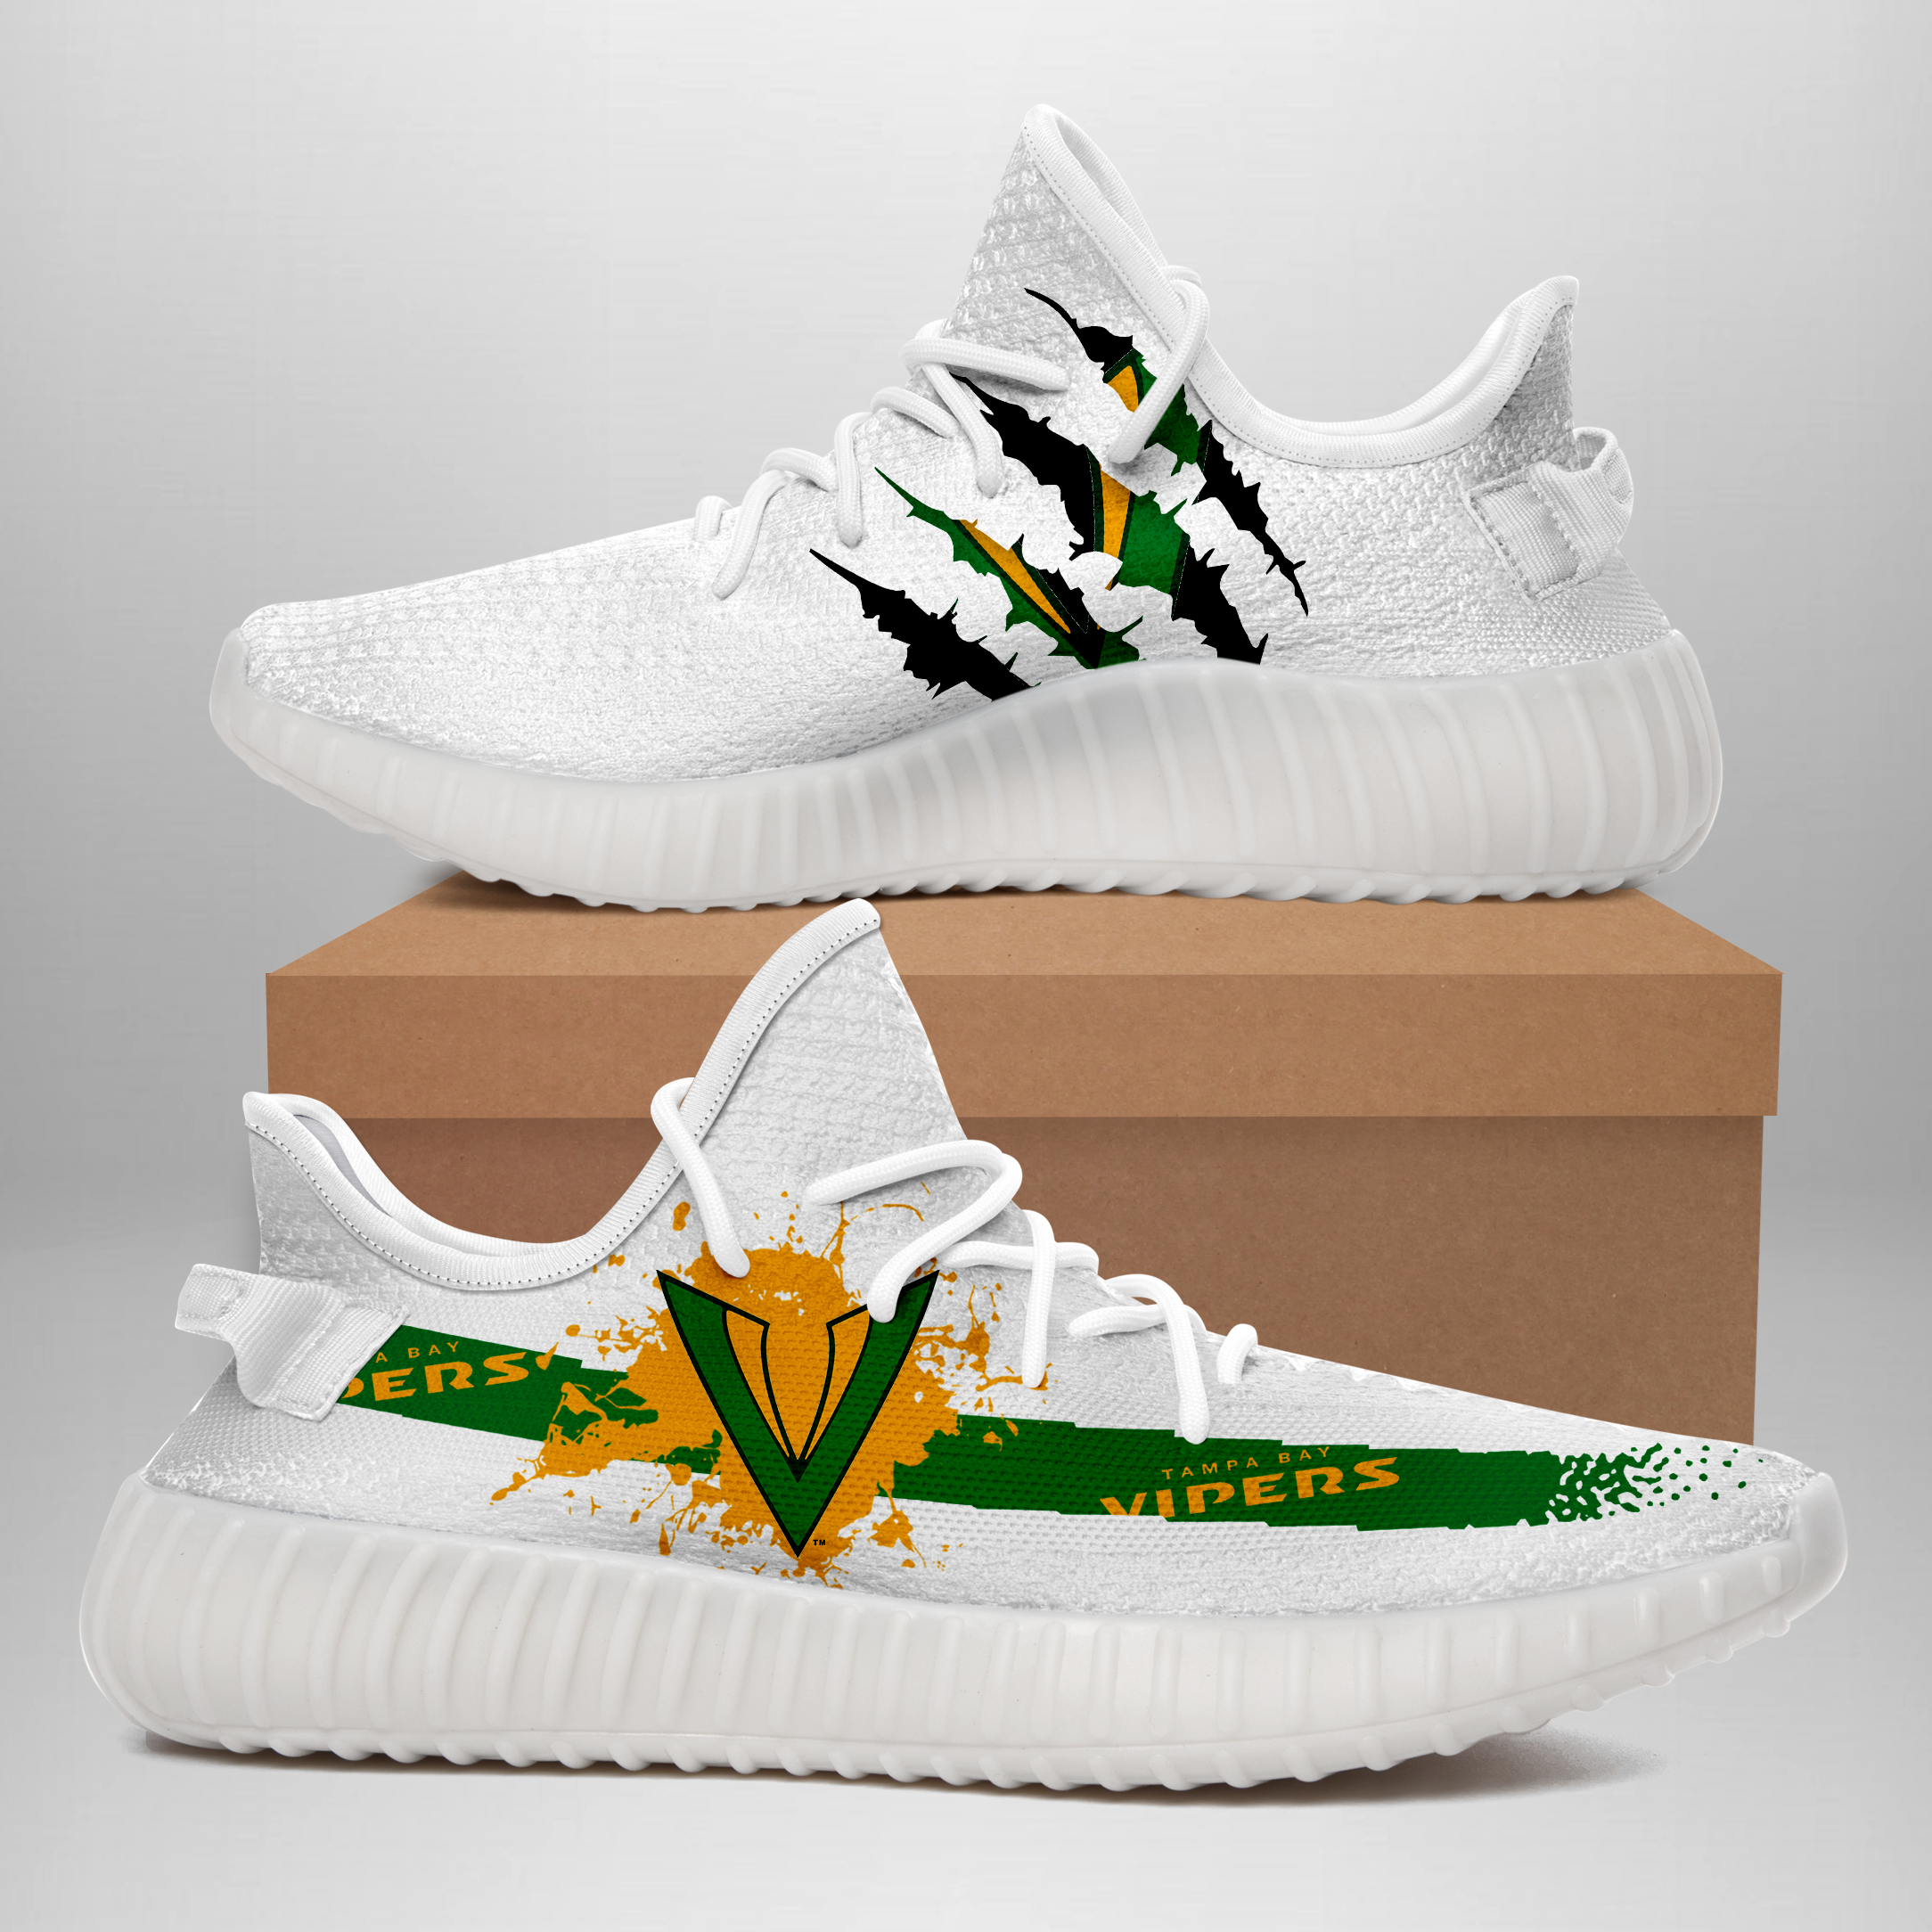 Tampa Bay Vipers XFL Logo Sport Team Yeezy Boost 350 V2 Mens Womens Size US5-13